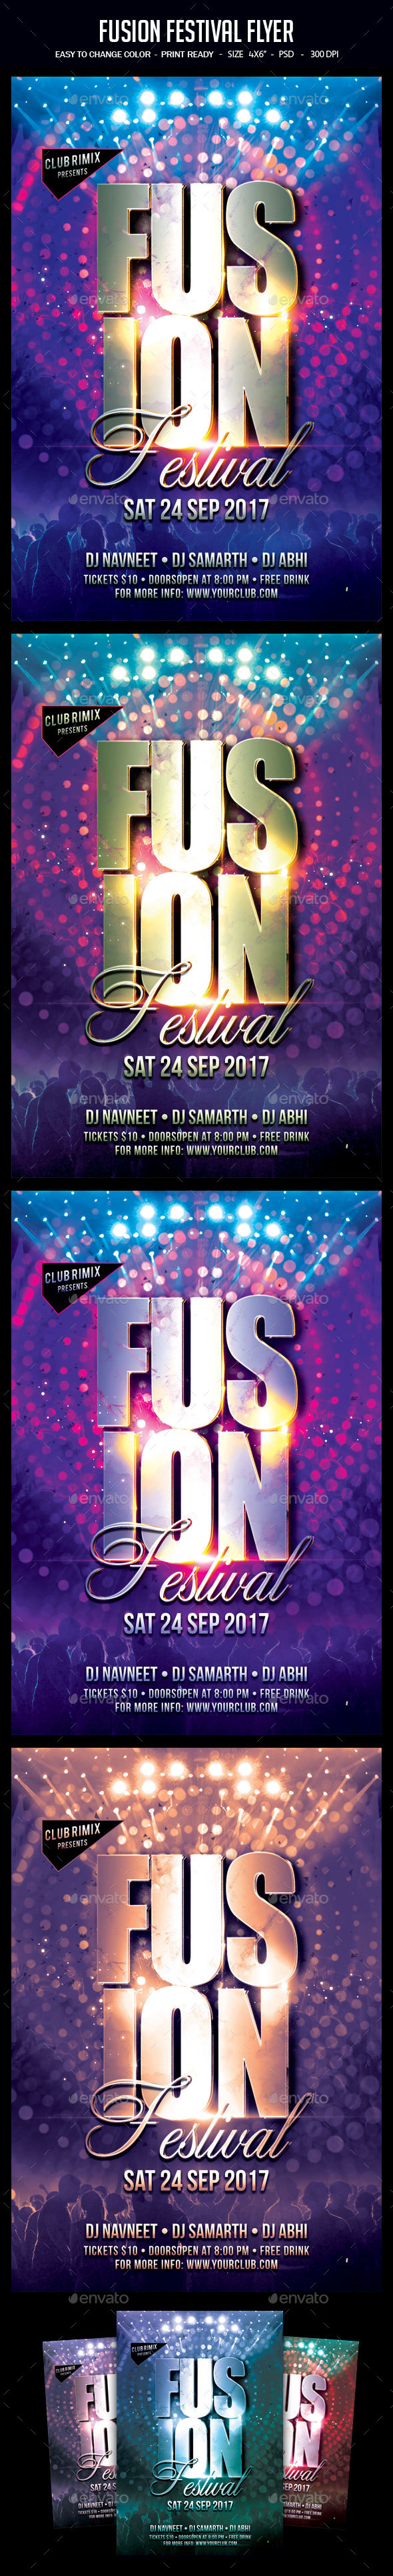 Fusion Festival Flyer - Clubs & Parties Events